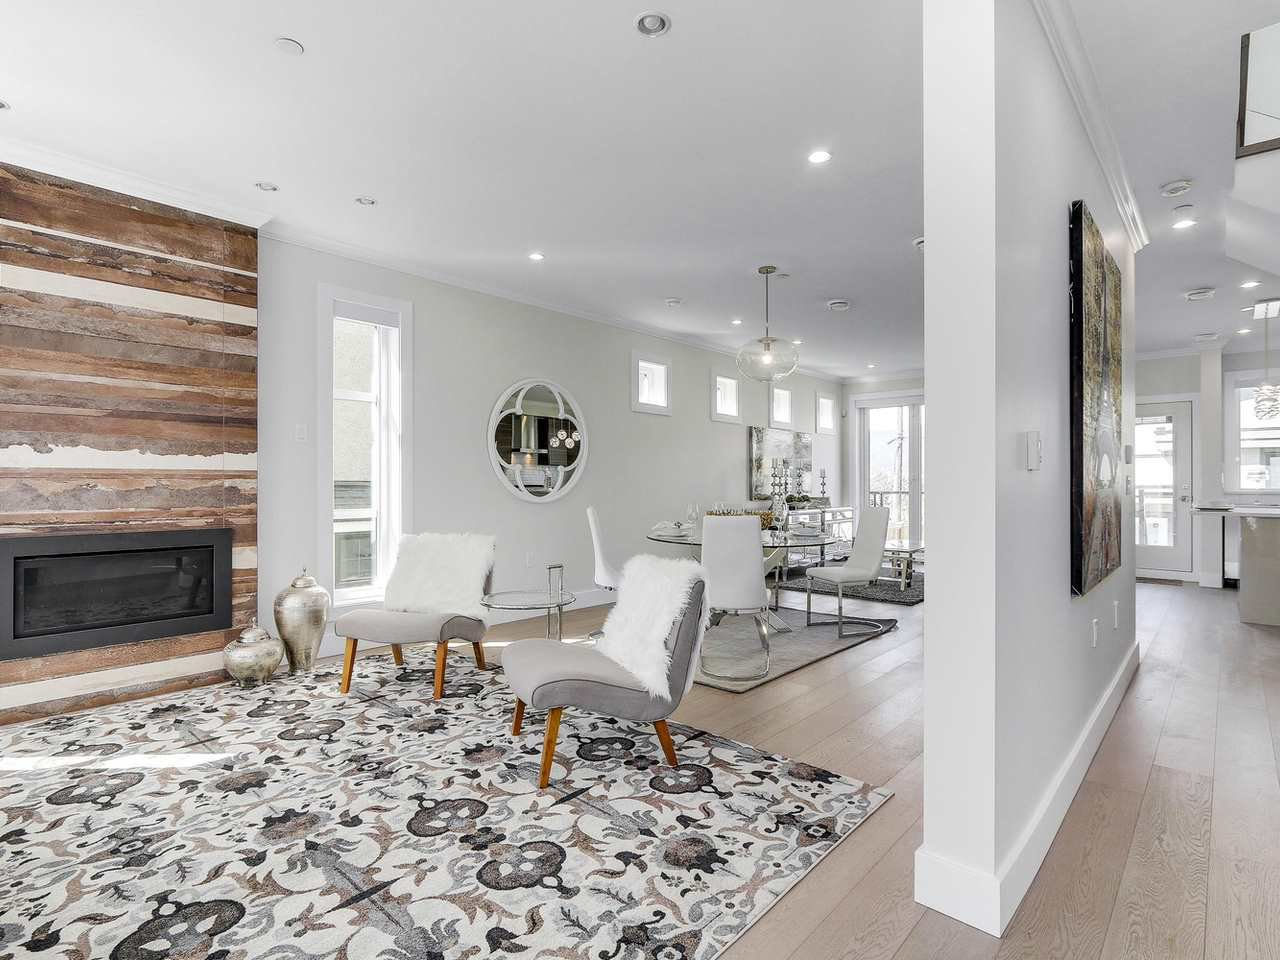 Photo 3: Photos: 3539 ETON STREET in Vancouver: Hastings East House for sale (Vancouver East)  : MLS®# R2159493